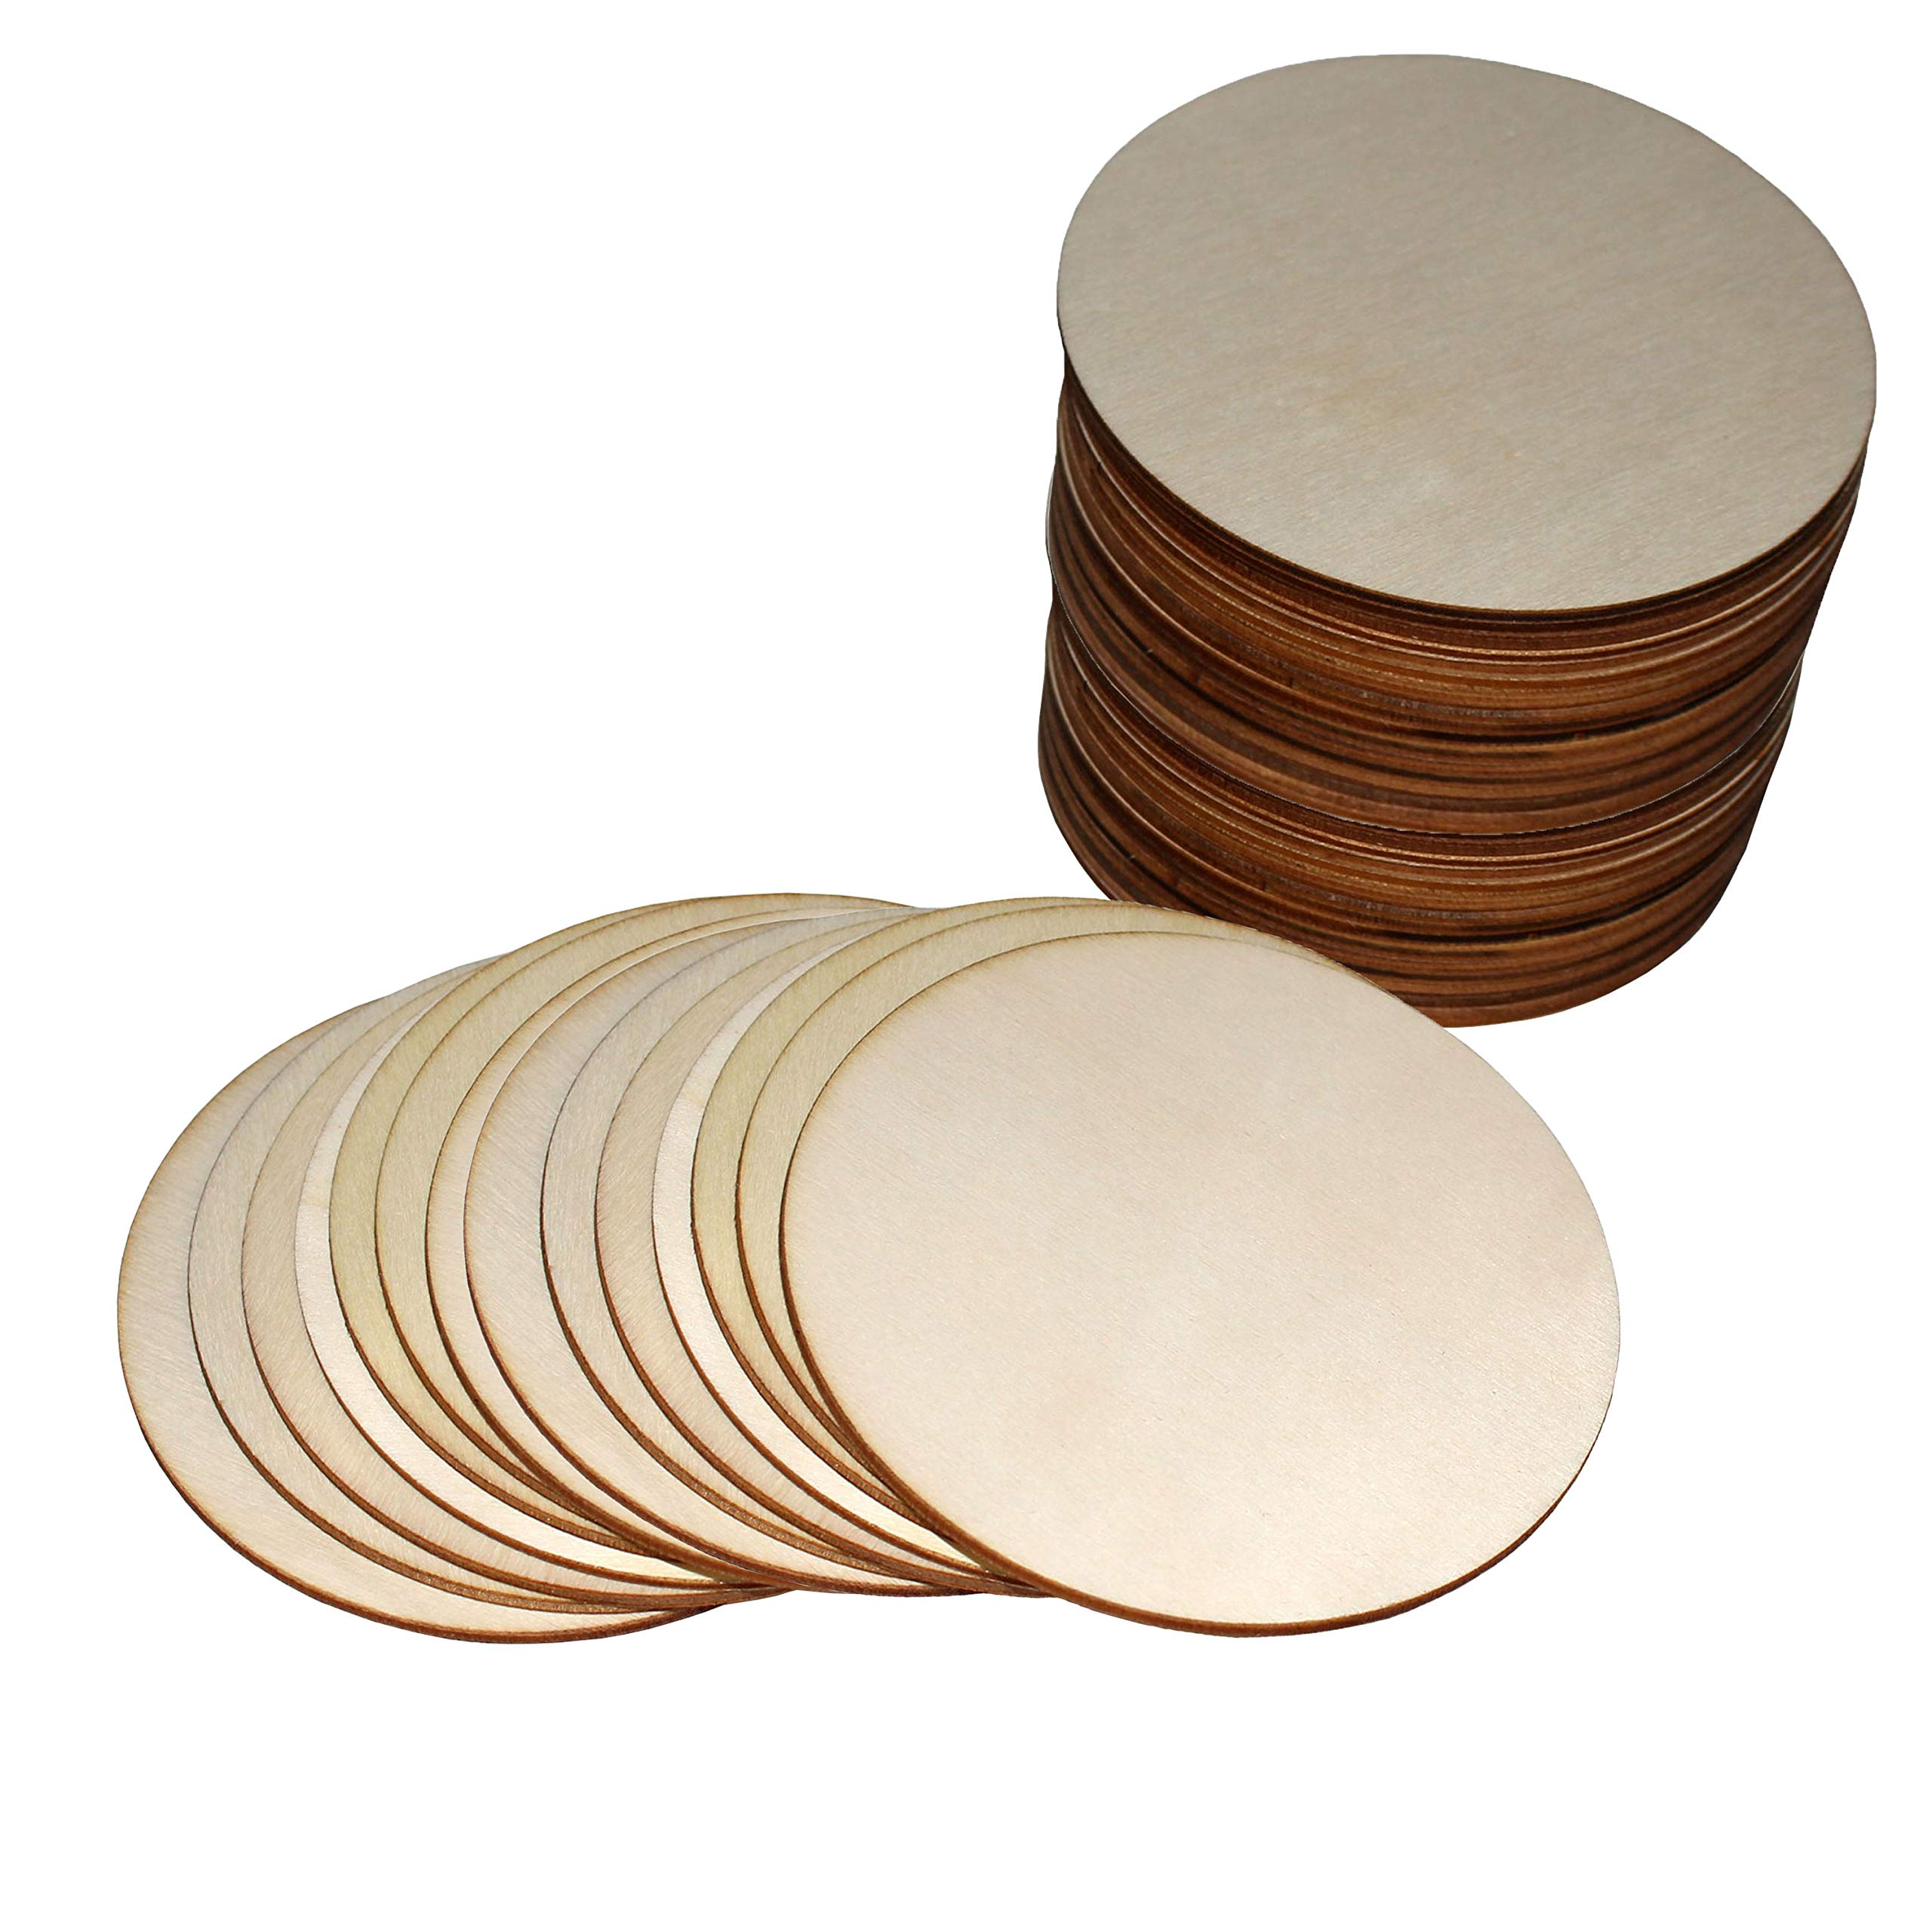 10cm 10 x Wooden Circle Shapes Plain Wood Craft Tags 100mm by BrilliantBuys